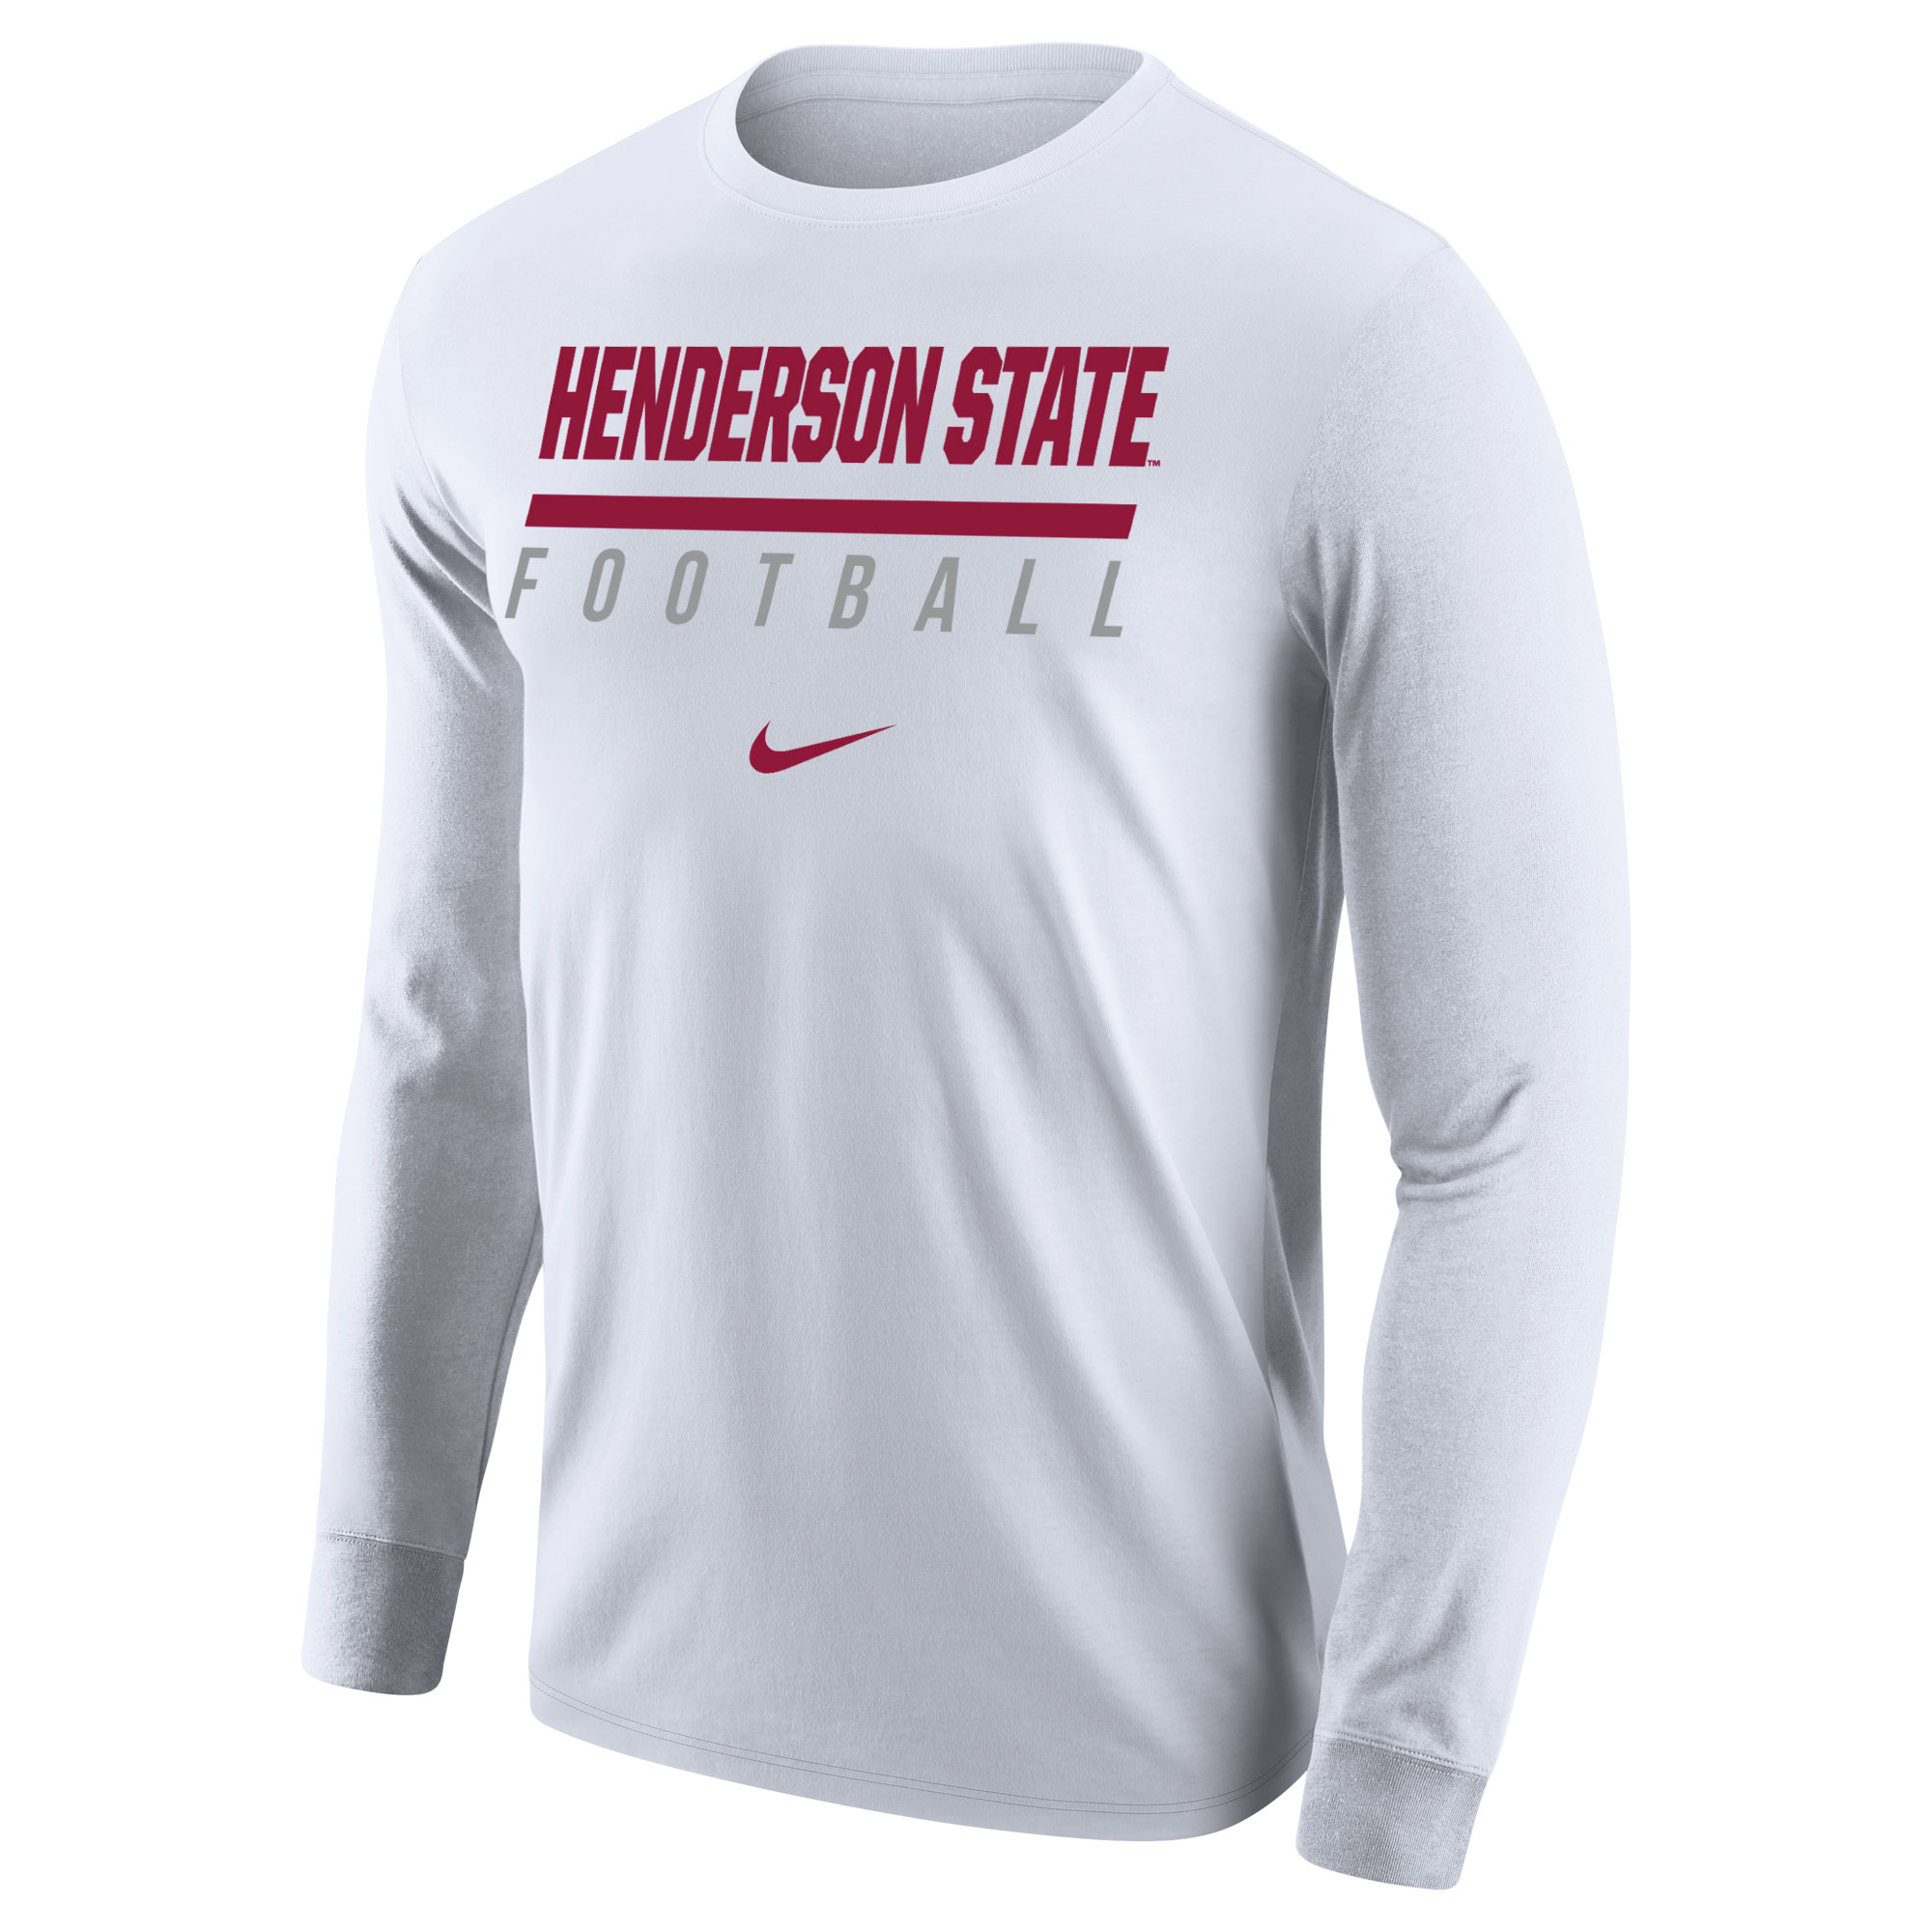 Henderson State Football Nike Long Sleeve T-Shirt